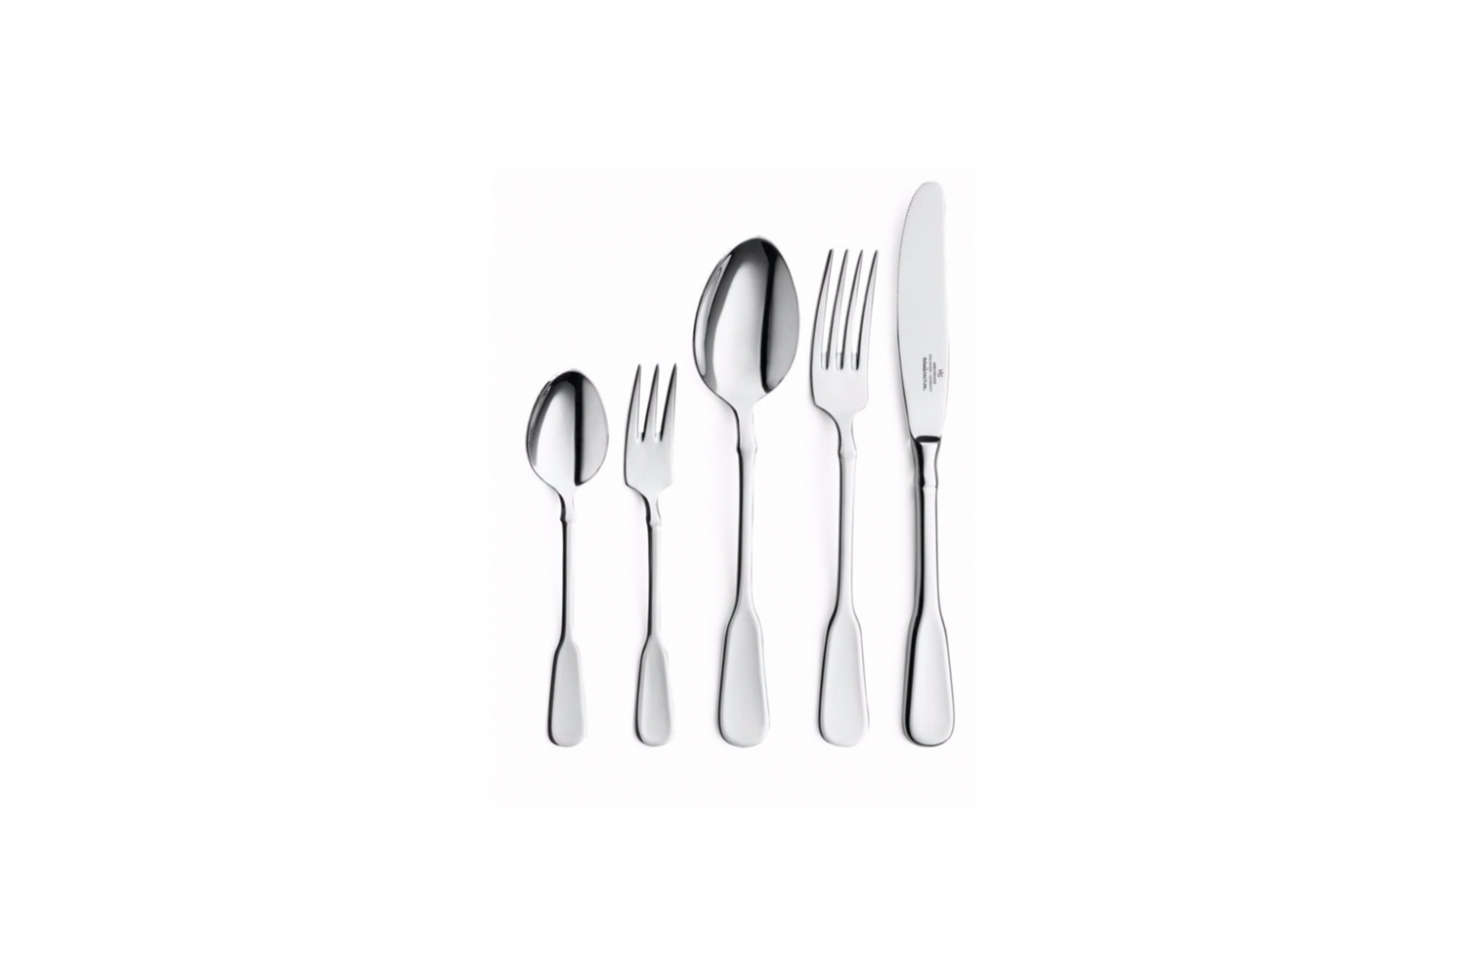 The Gehring Spaten Table Cutlery from Gehring in Solingen is another Spaten style set of flatware; €39 at Manufactum.